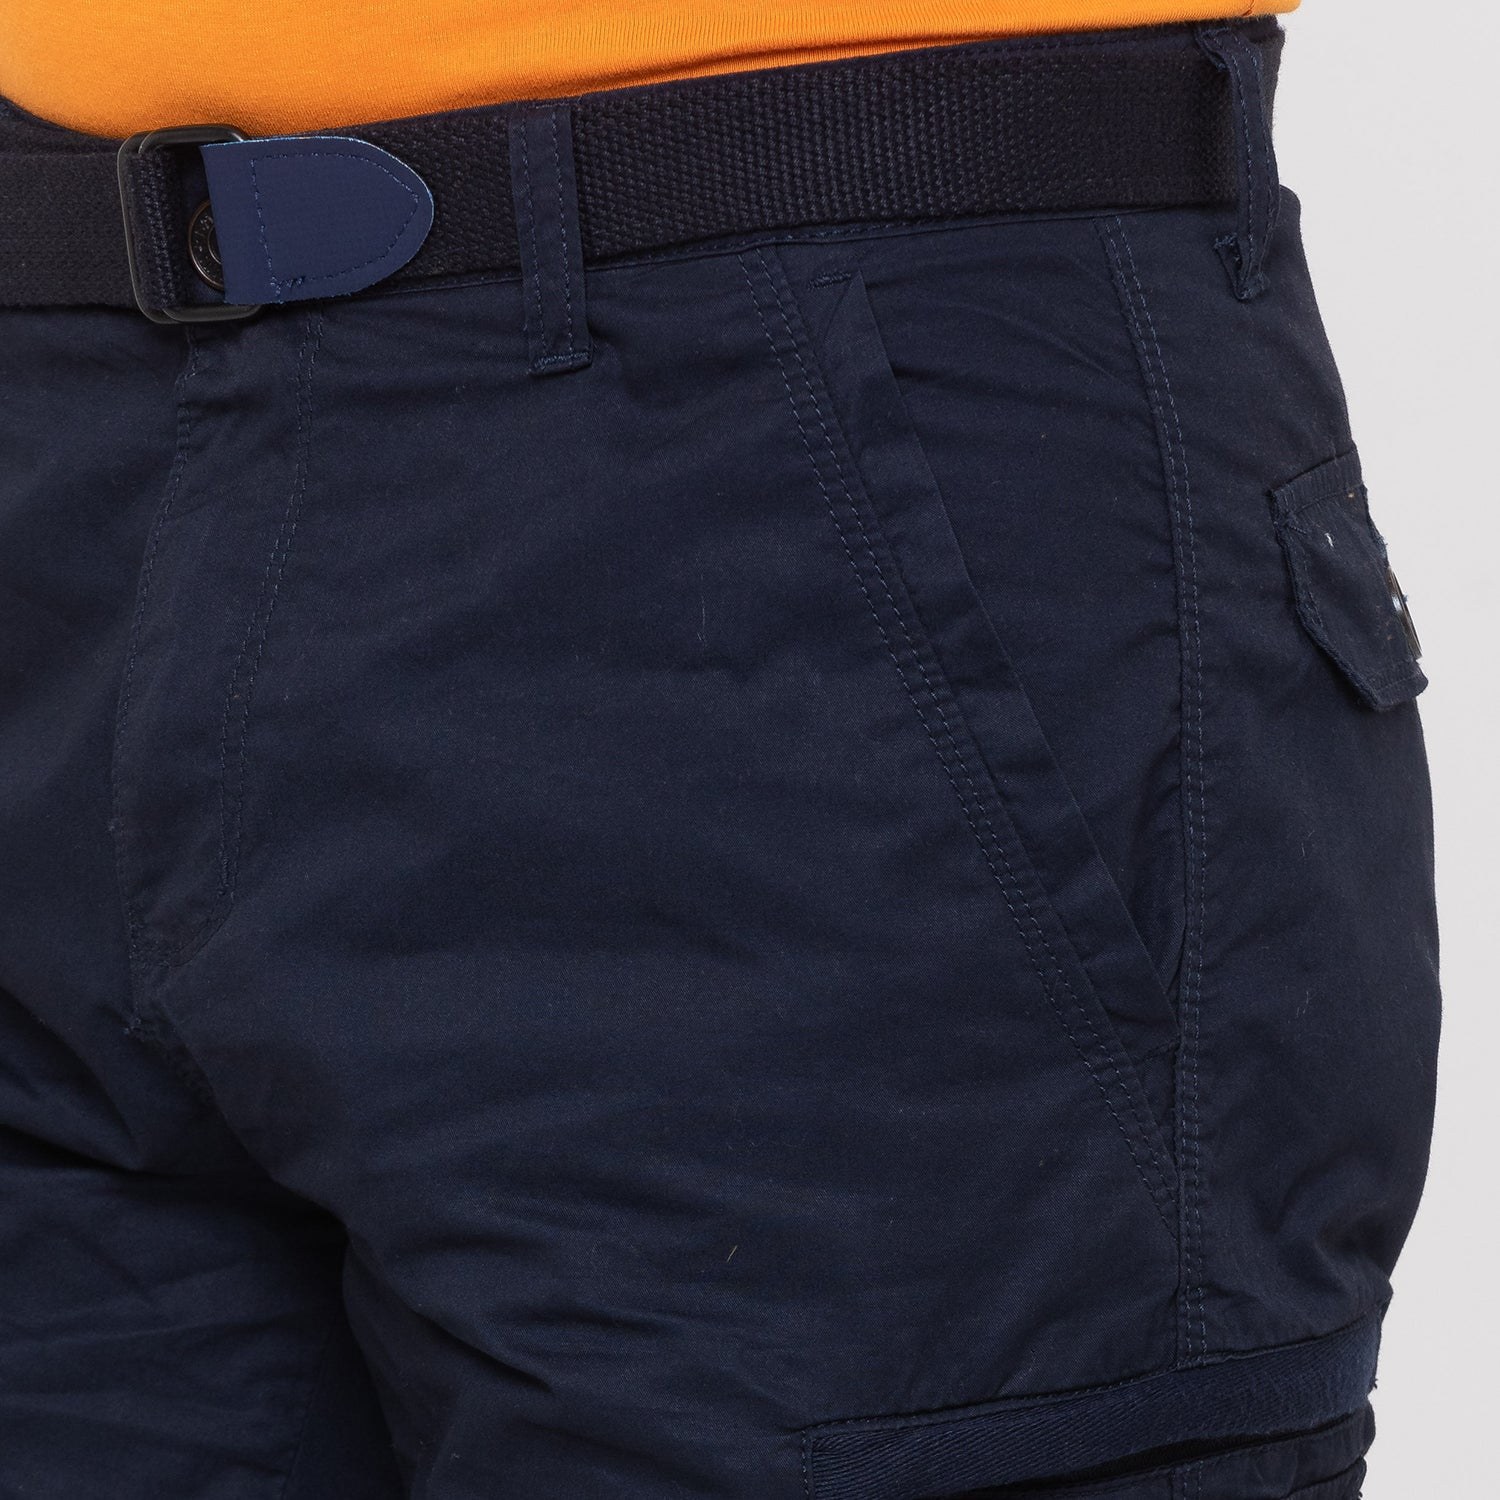 Globus Navy Blue Solid Shorts-5